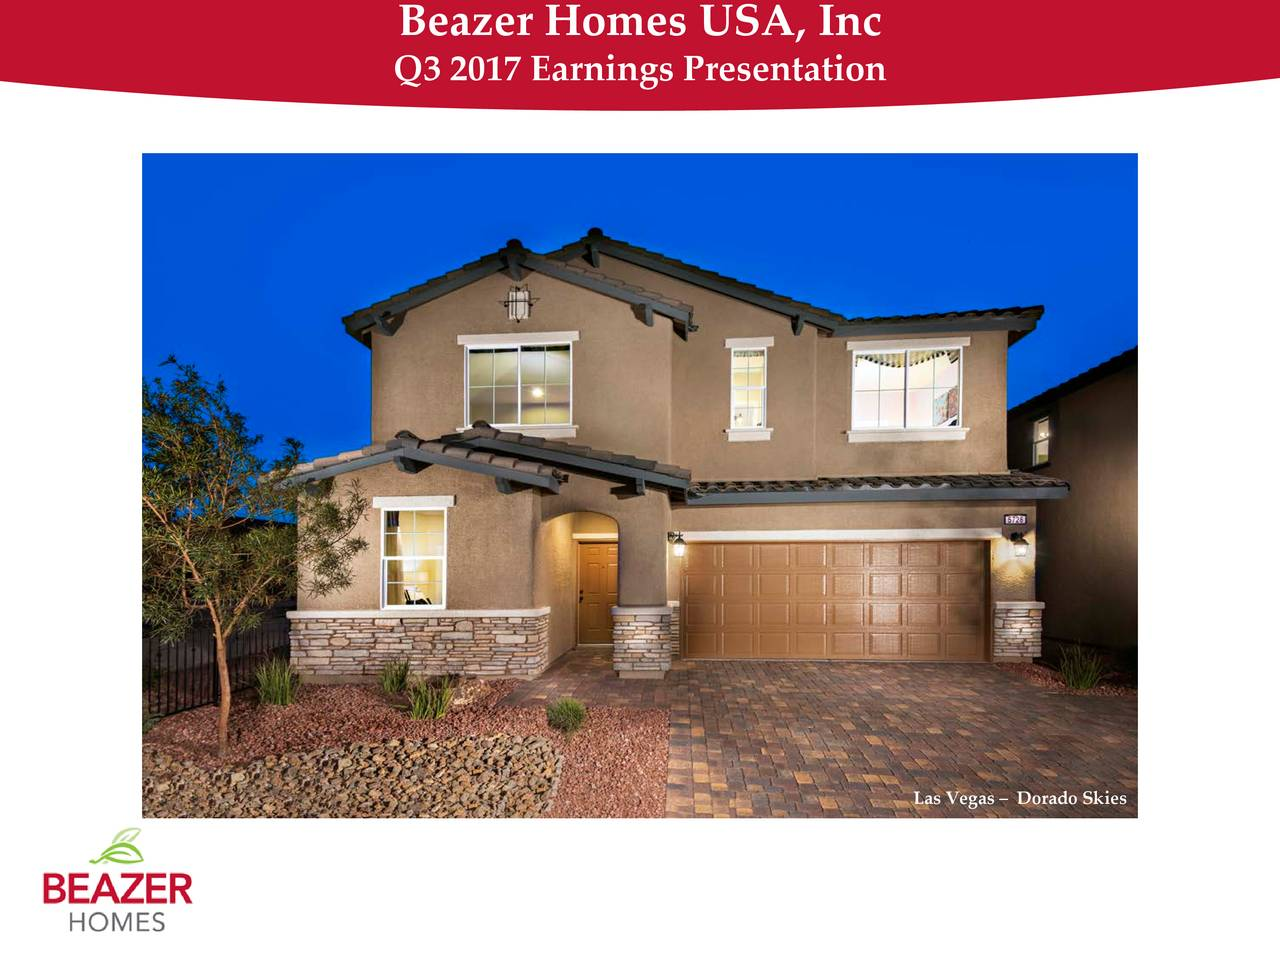 Beazer Homes USA, Inc